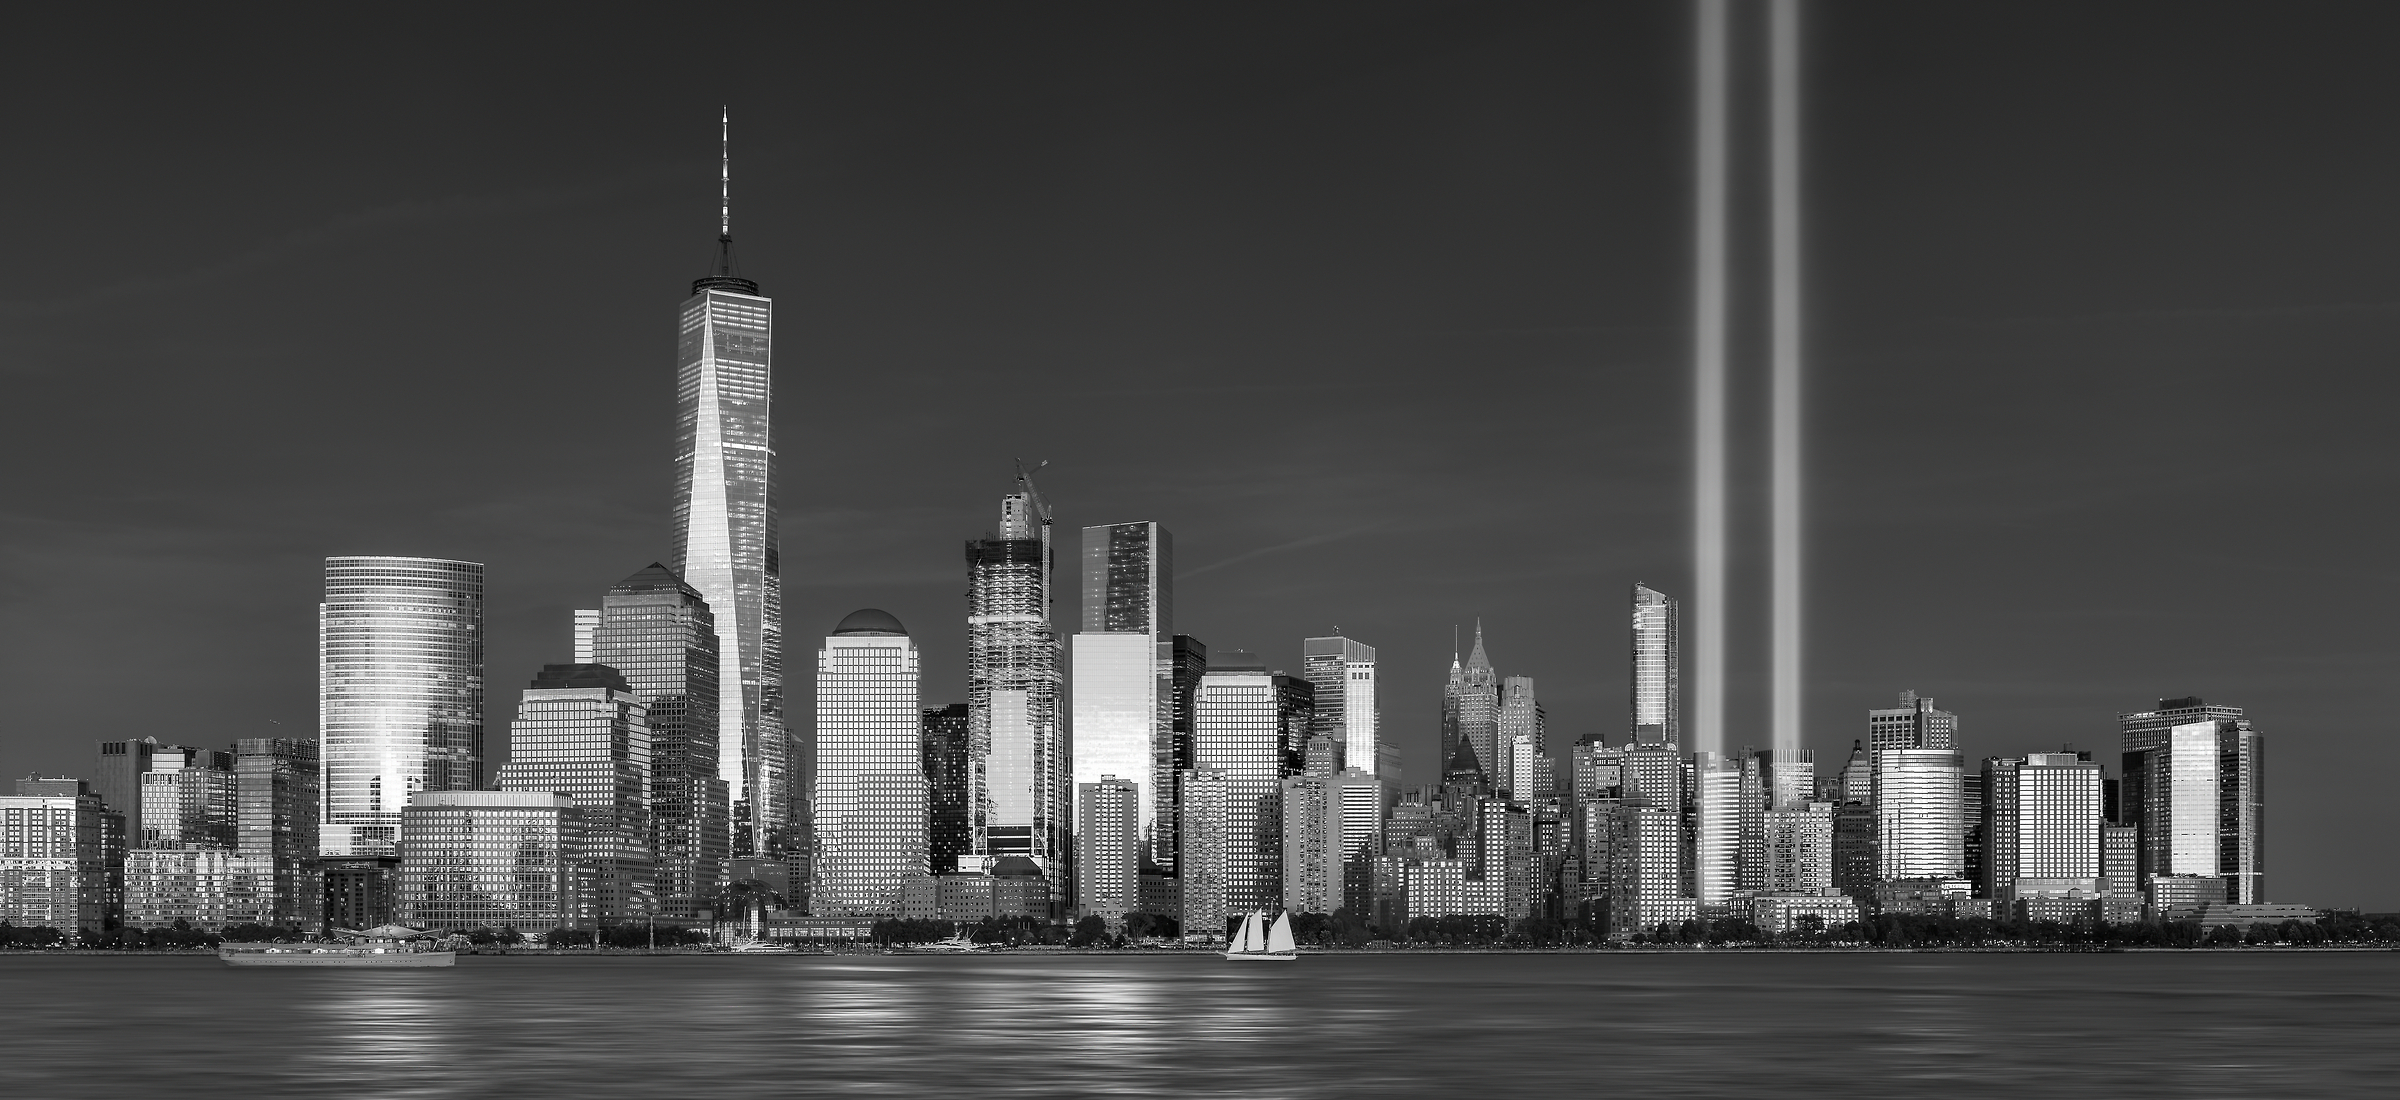 407 megapixels! The highest resolution VAST photo of the September 11th 9/11 Tribute in Light memorial, the World Trade Center, and the Manhattan city skyline at sunset in New York City; created by Dan Piech